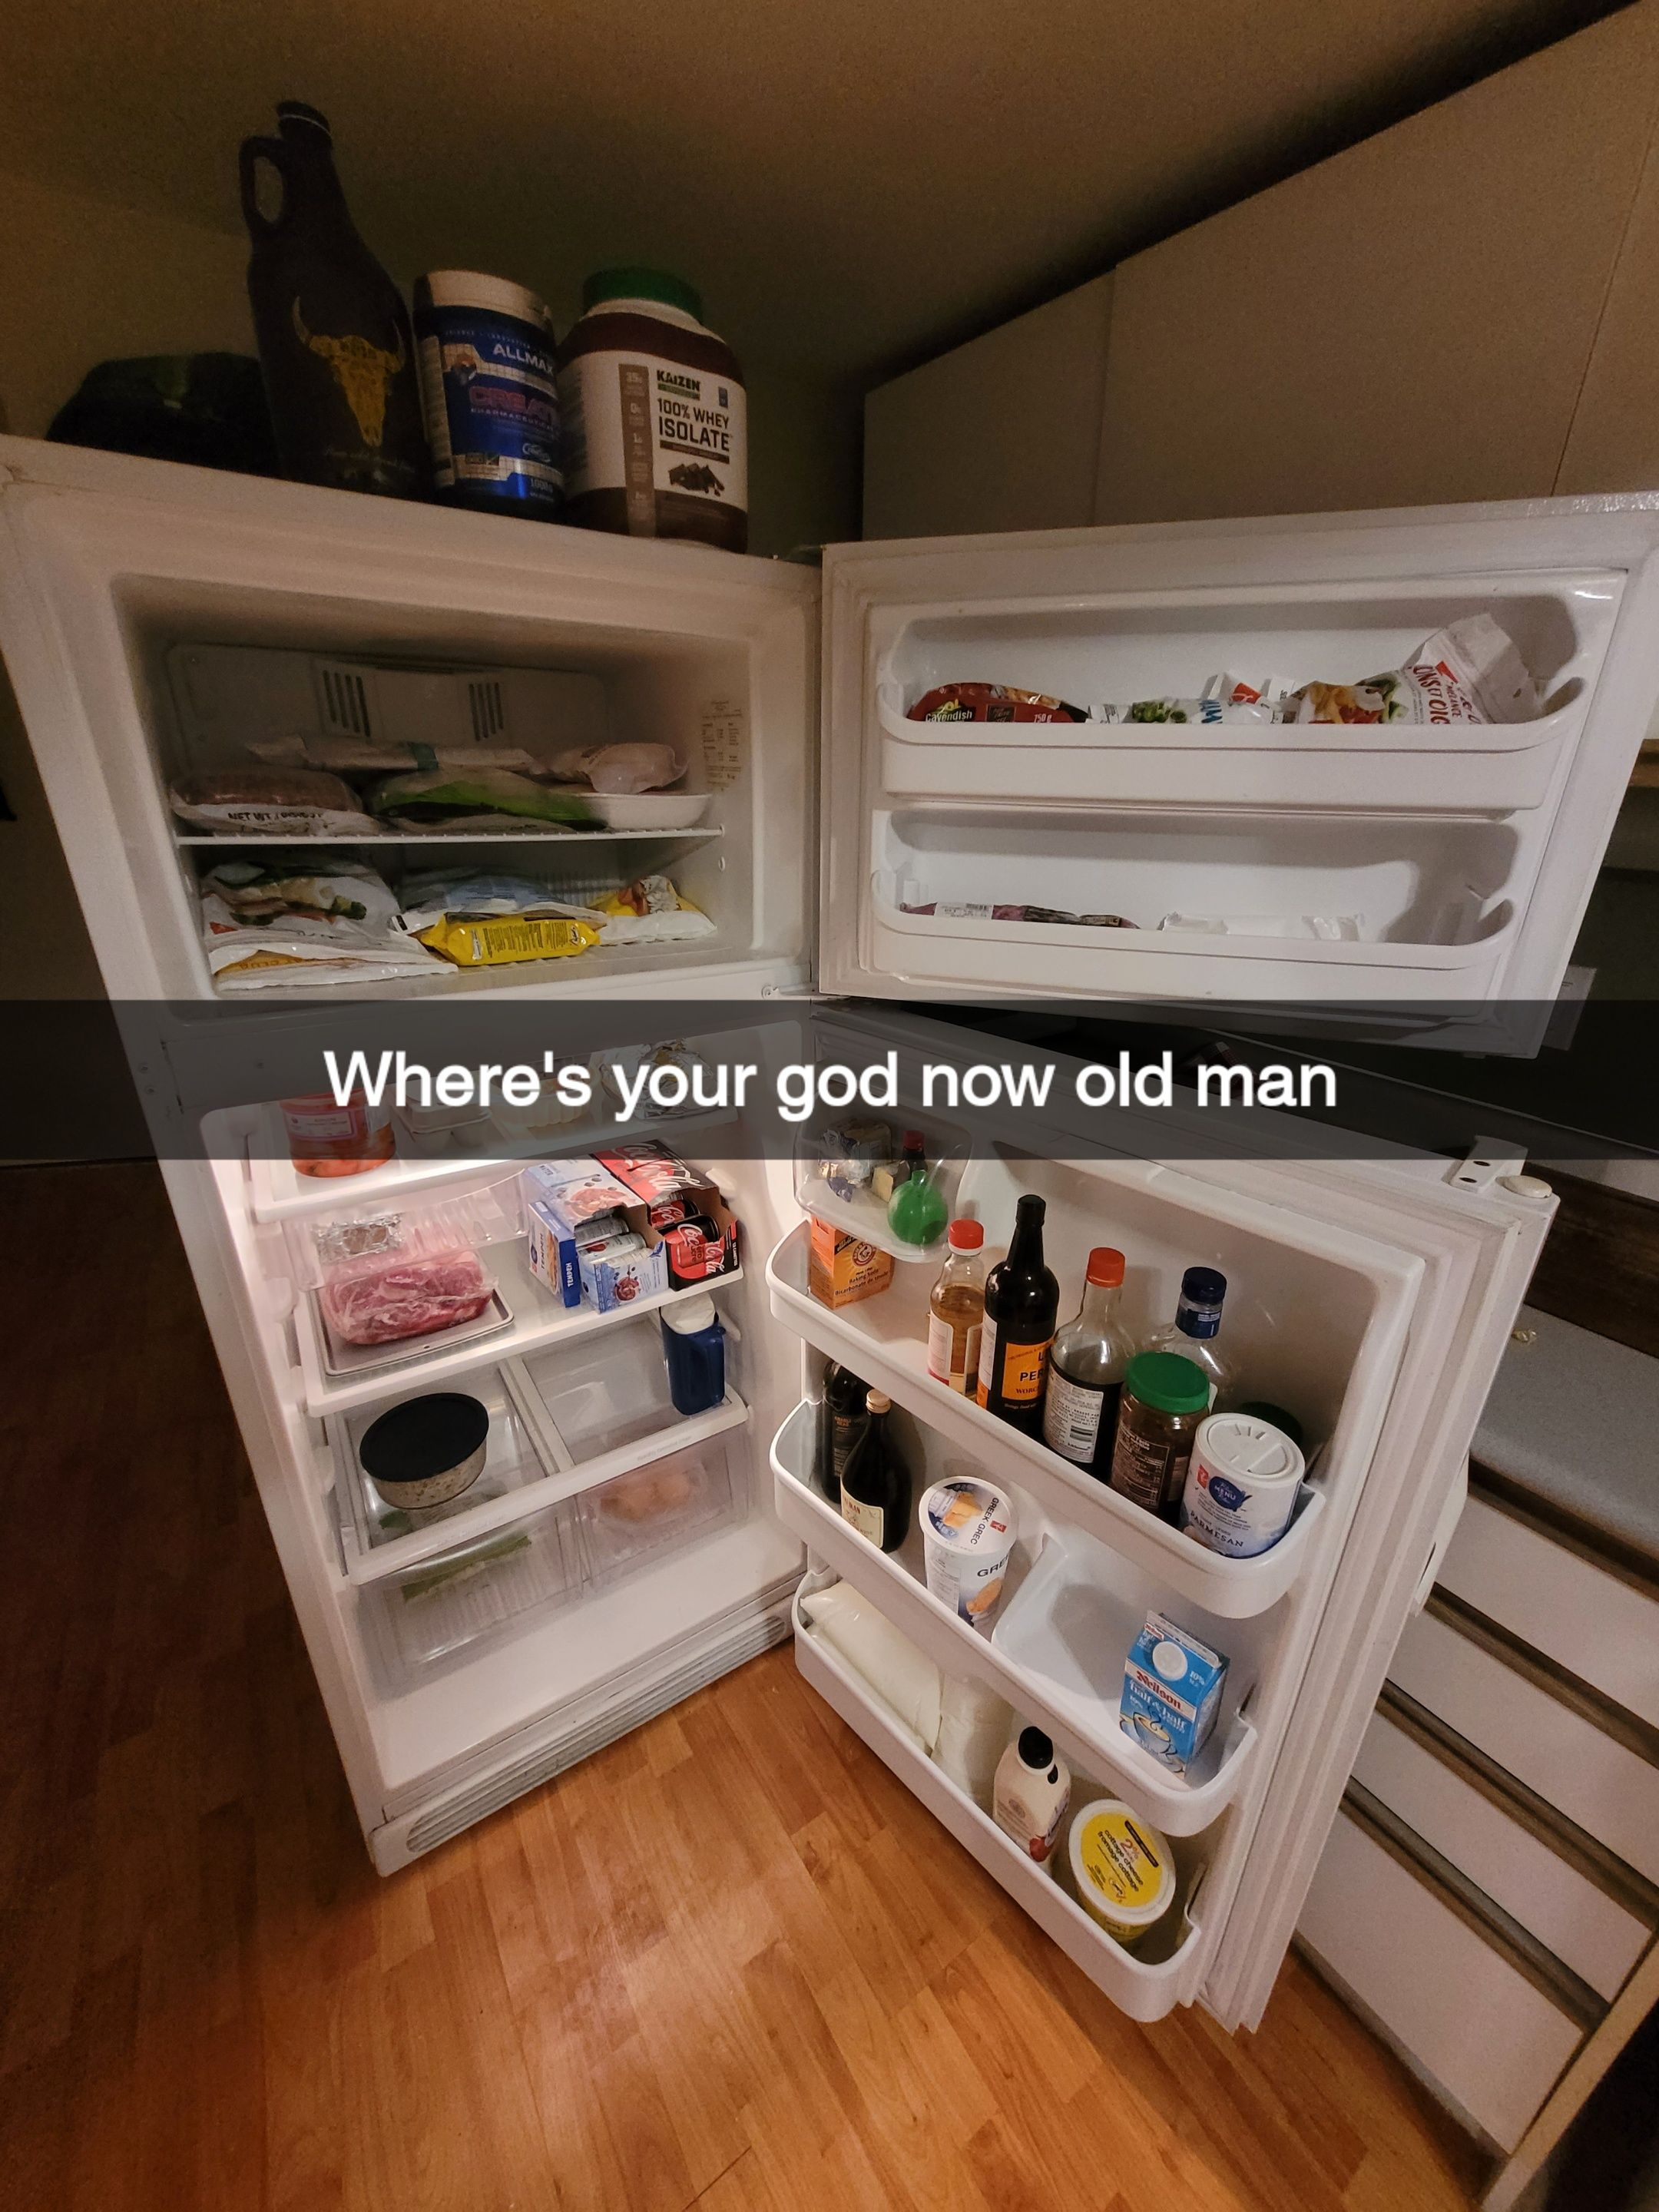 I send my father pictures of a wide open fridge to give him anxiety